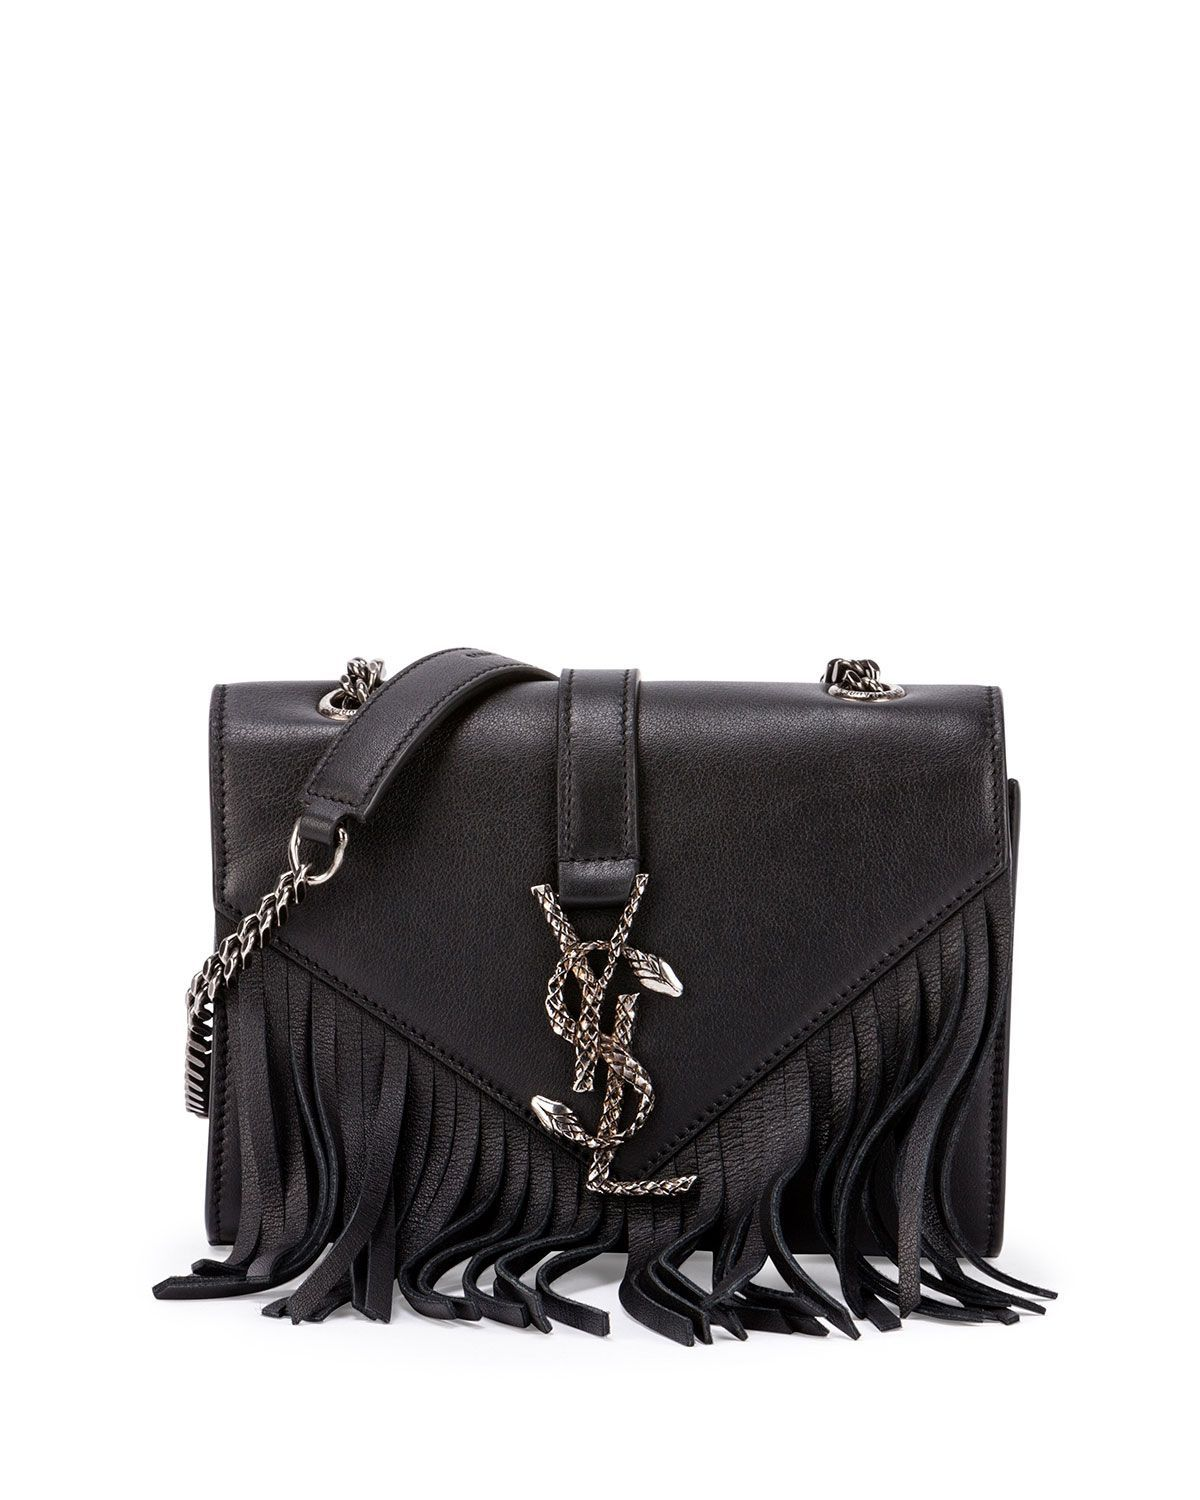 0091dec23537 Saint Laurent calfskin crossbody bag. Chain crossbody strap  21.3